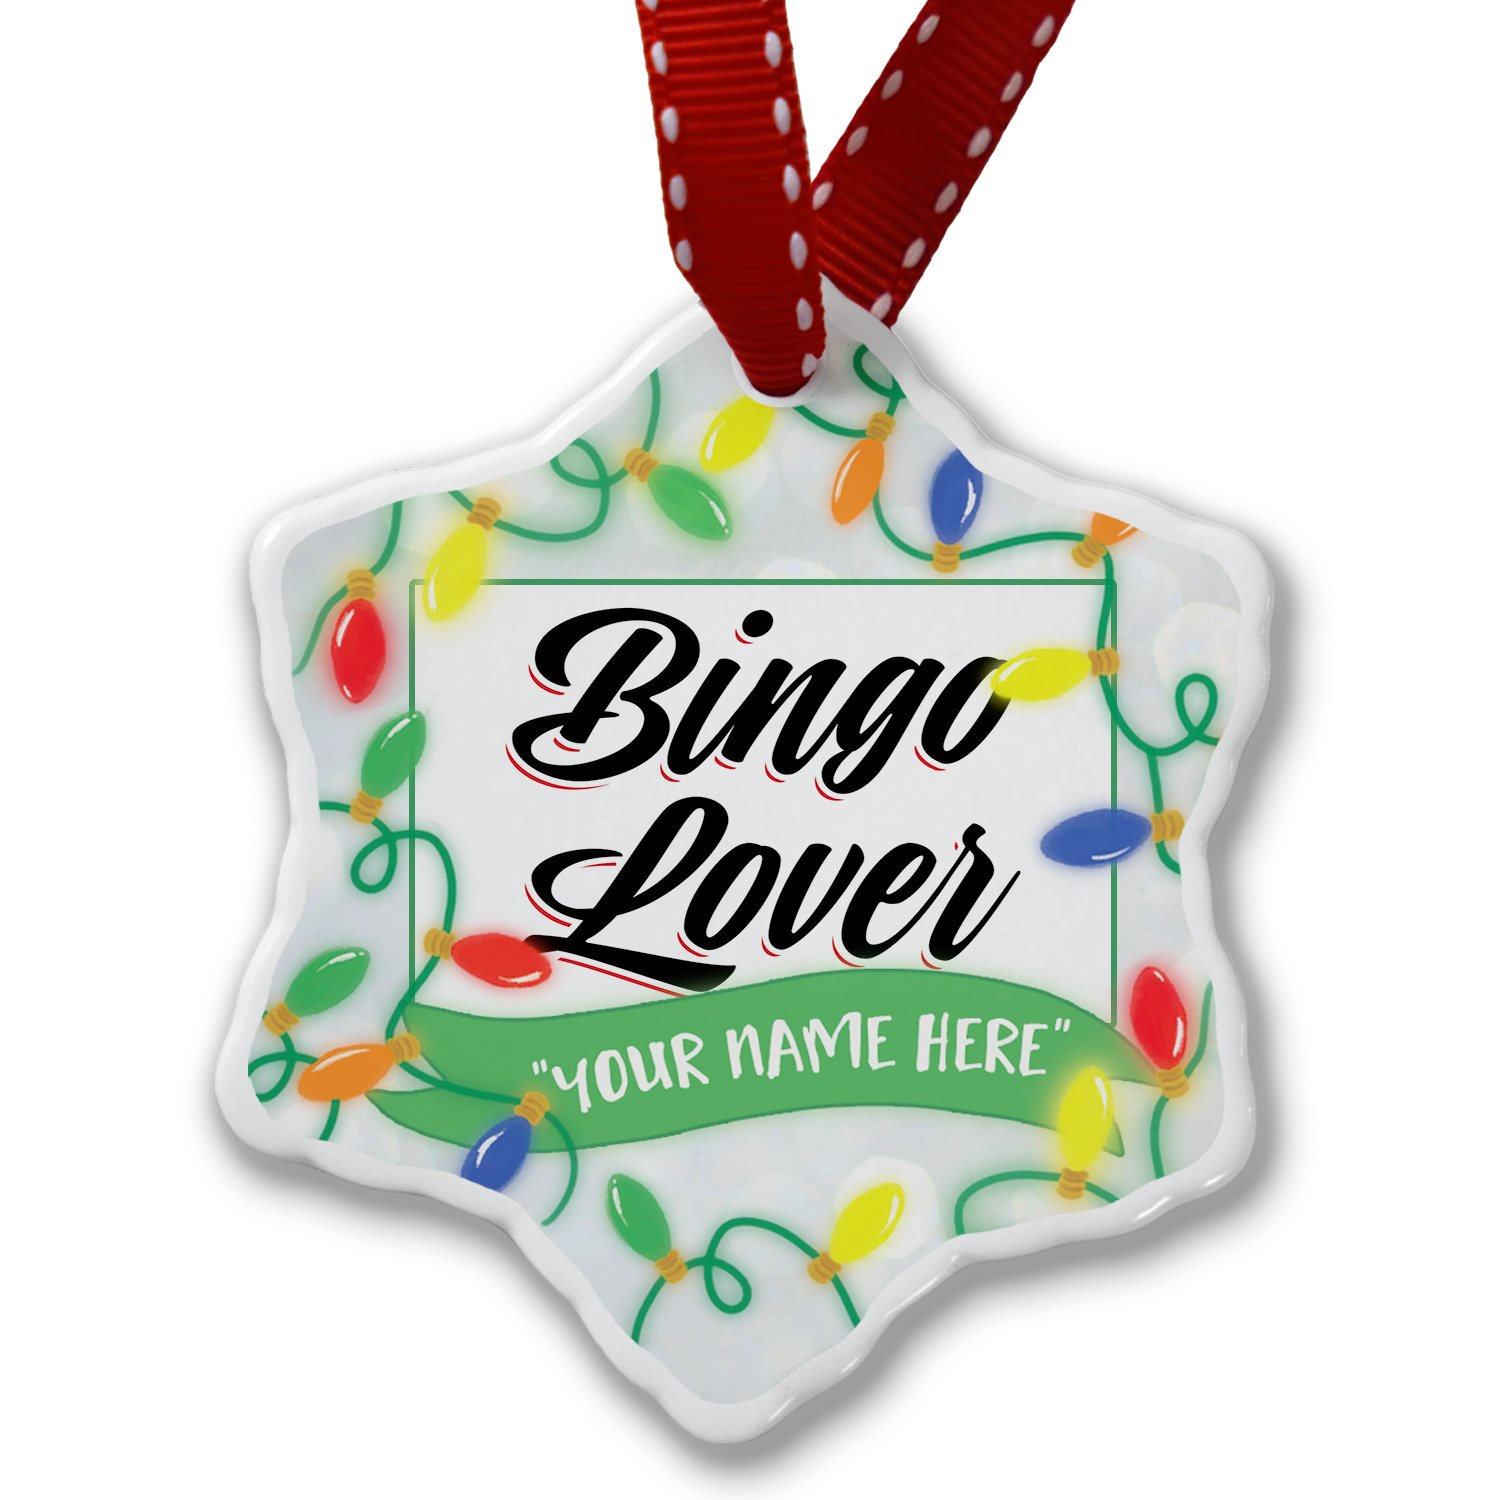 Personalized Name Christmas Ornament, Vintage Lettering Bingo Lover NEONBLOND